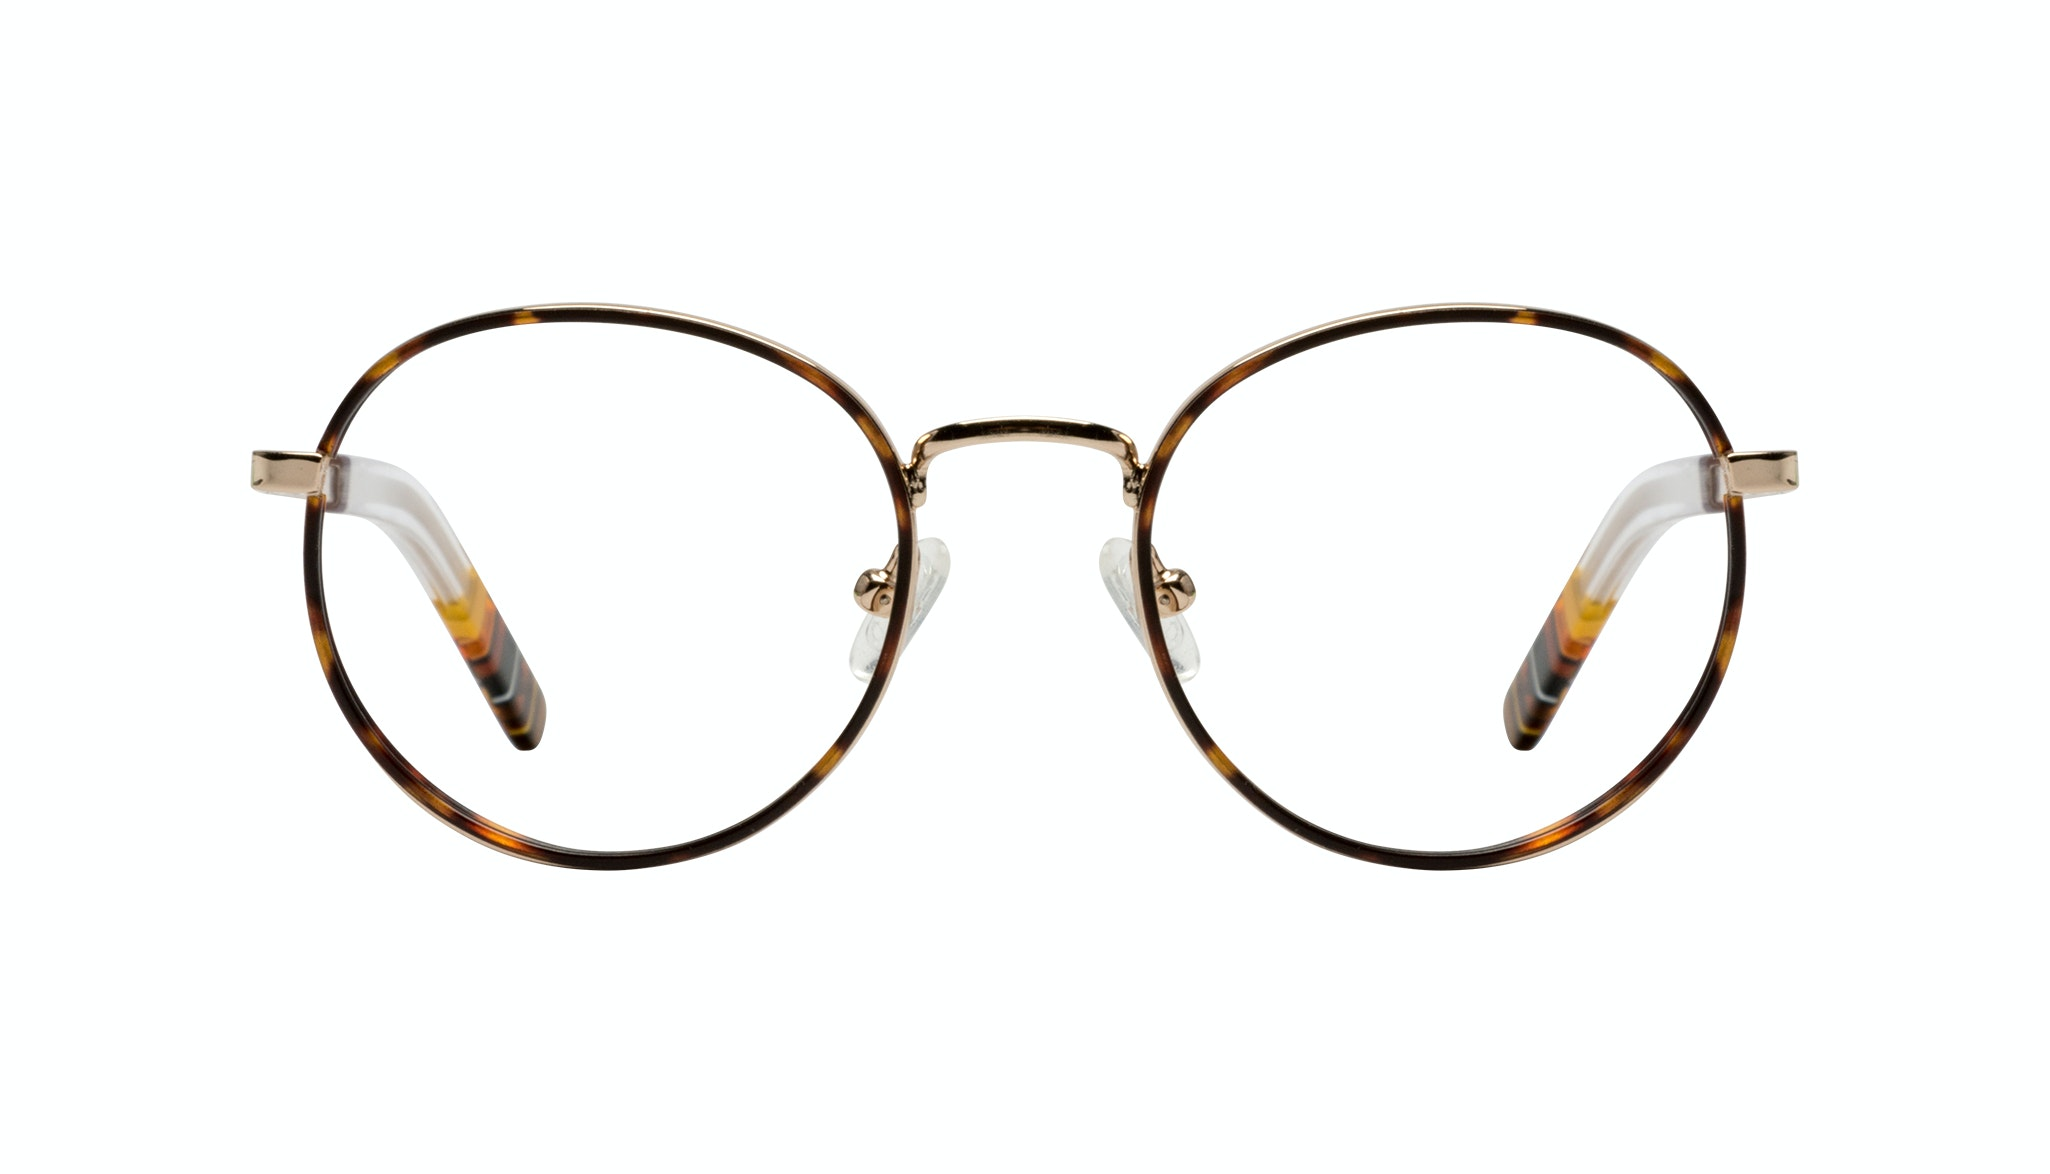 Affordable Fashion Glasses Round Eyeglasses Men Reach Tortoise